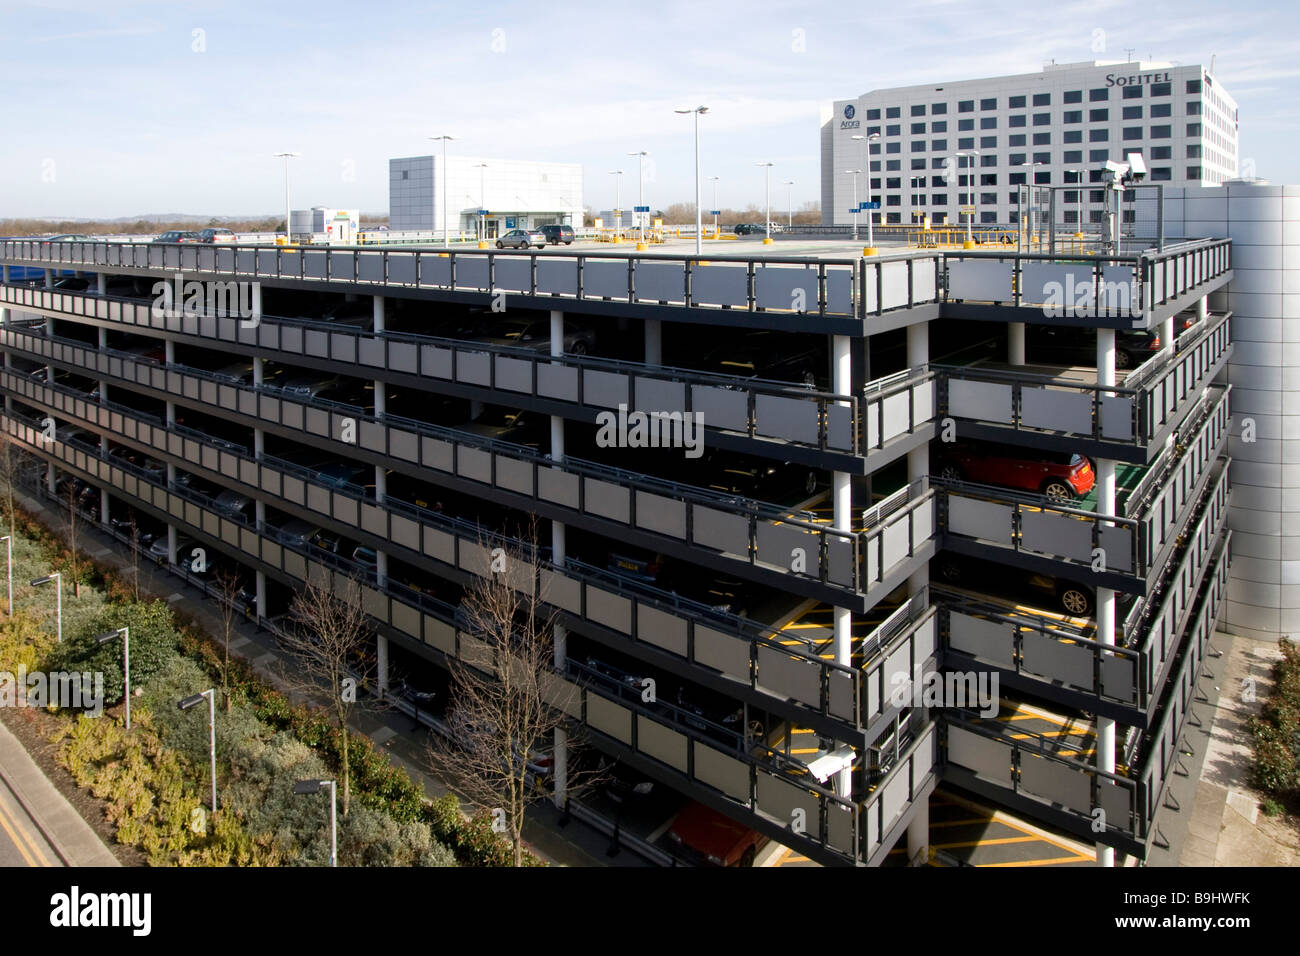 Multi Storey Car Park Manchester Airport